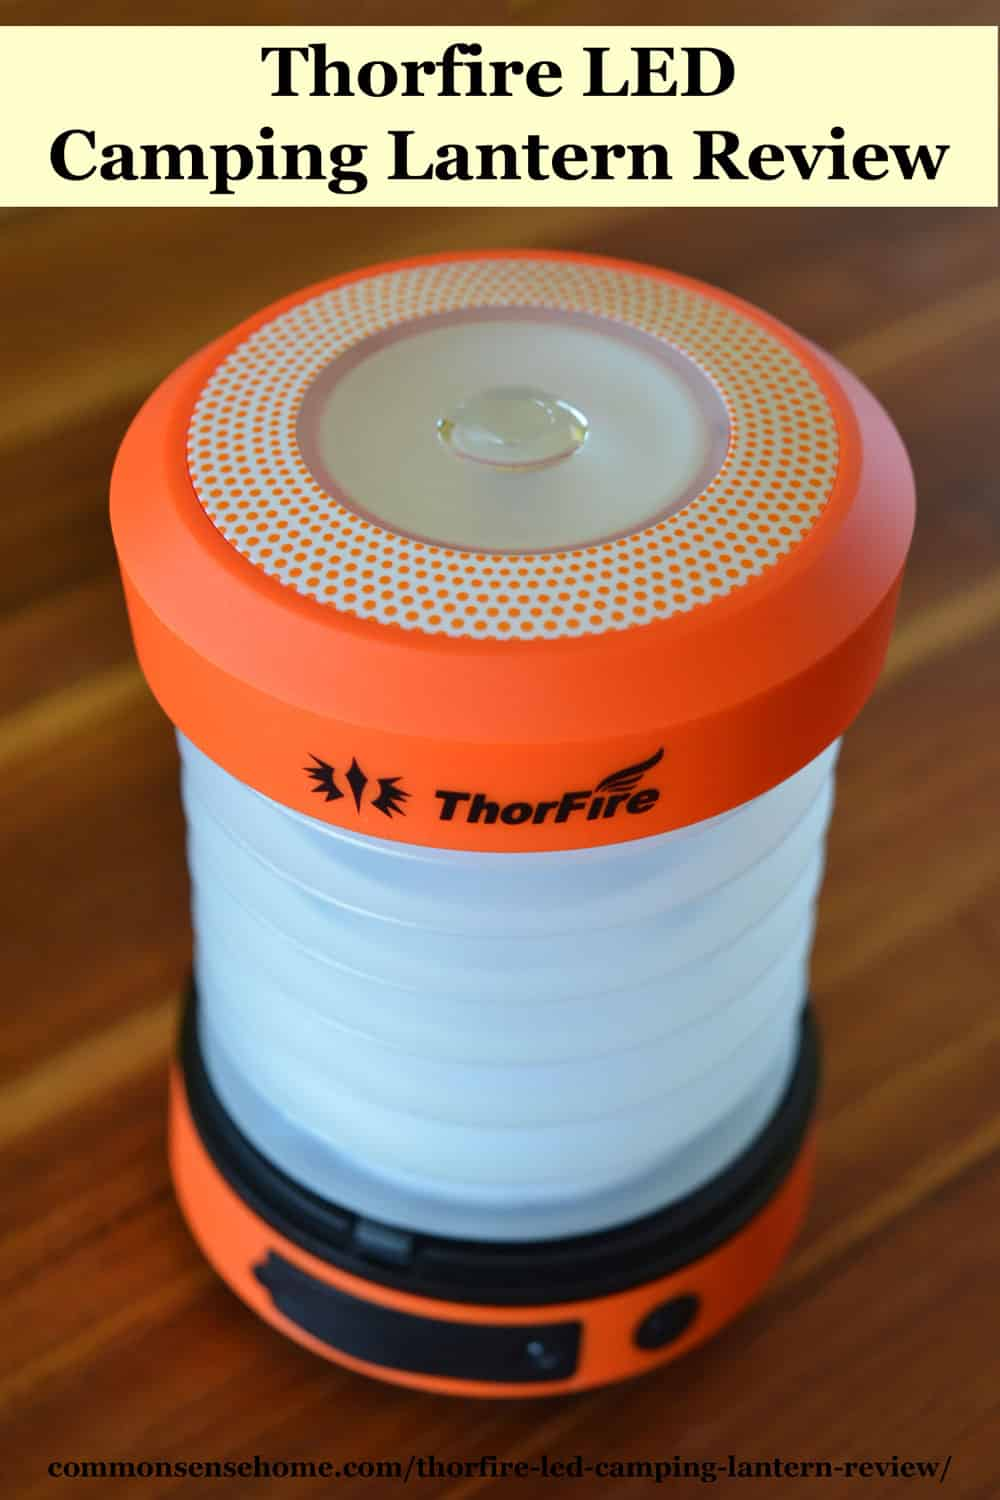 Thorfire LED Camping Lantern Review